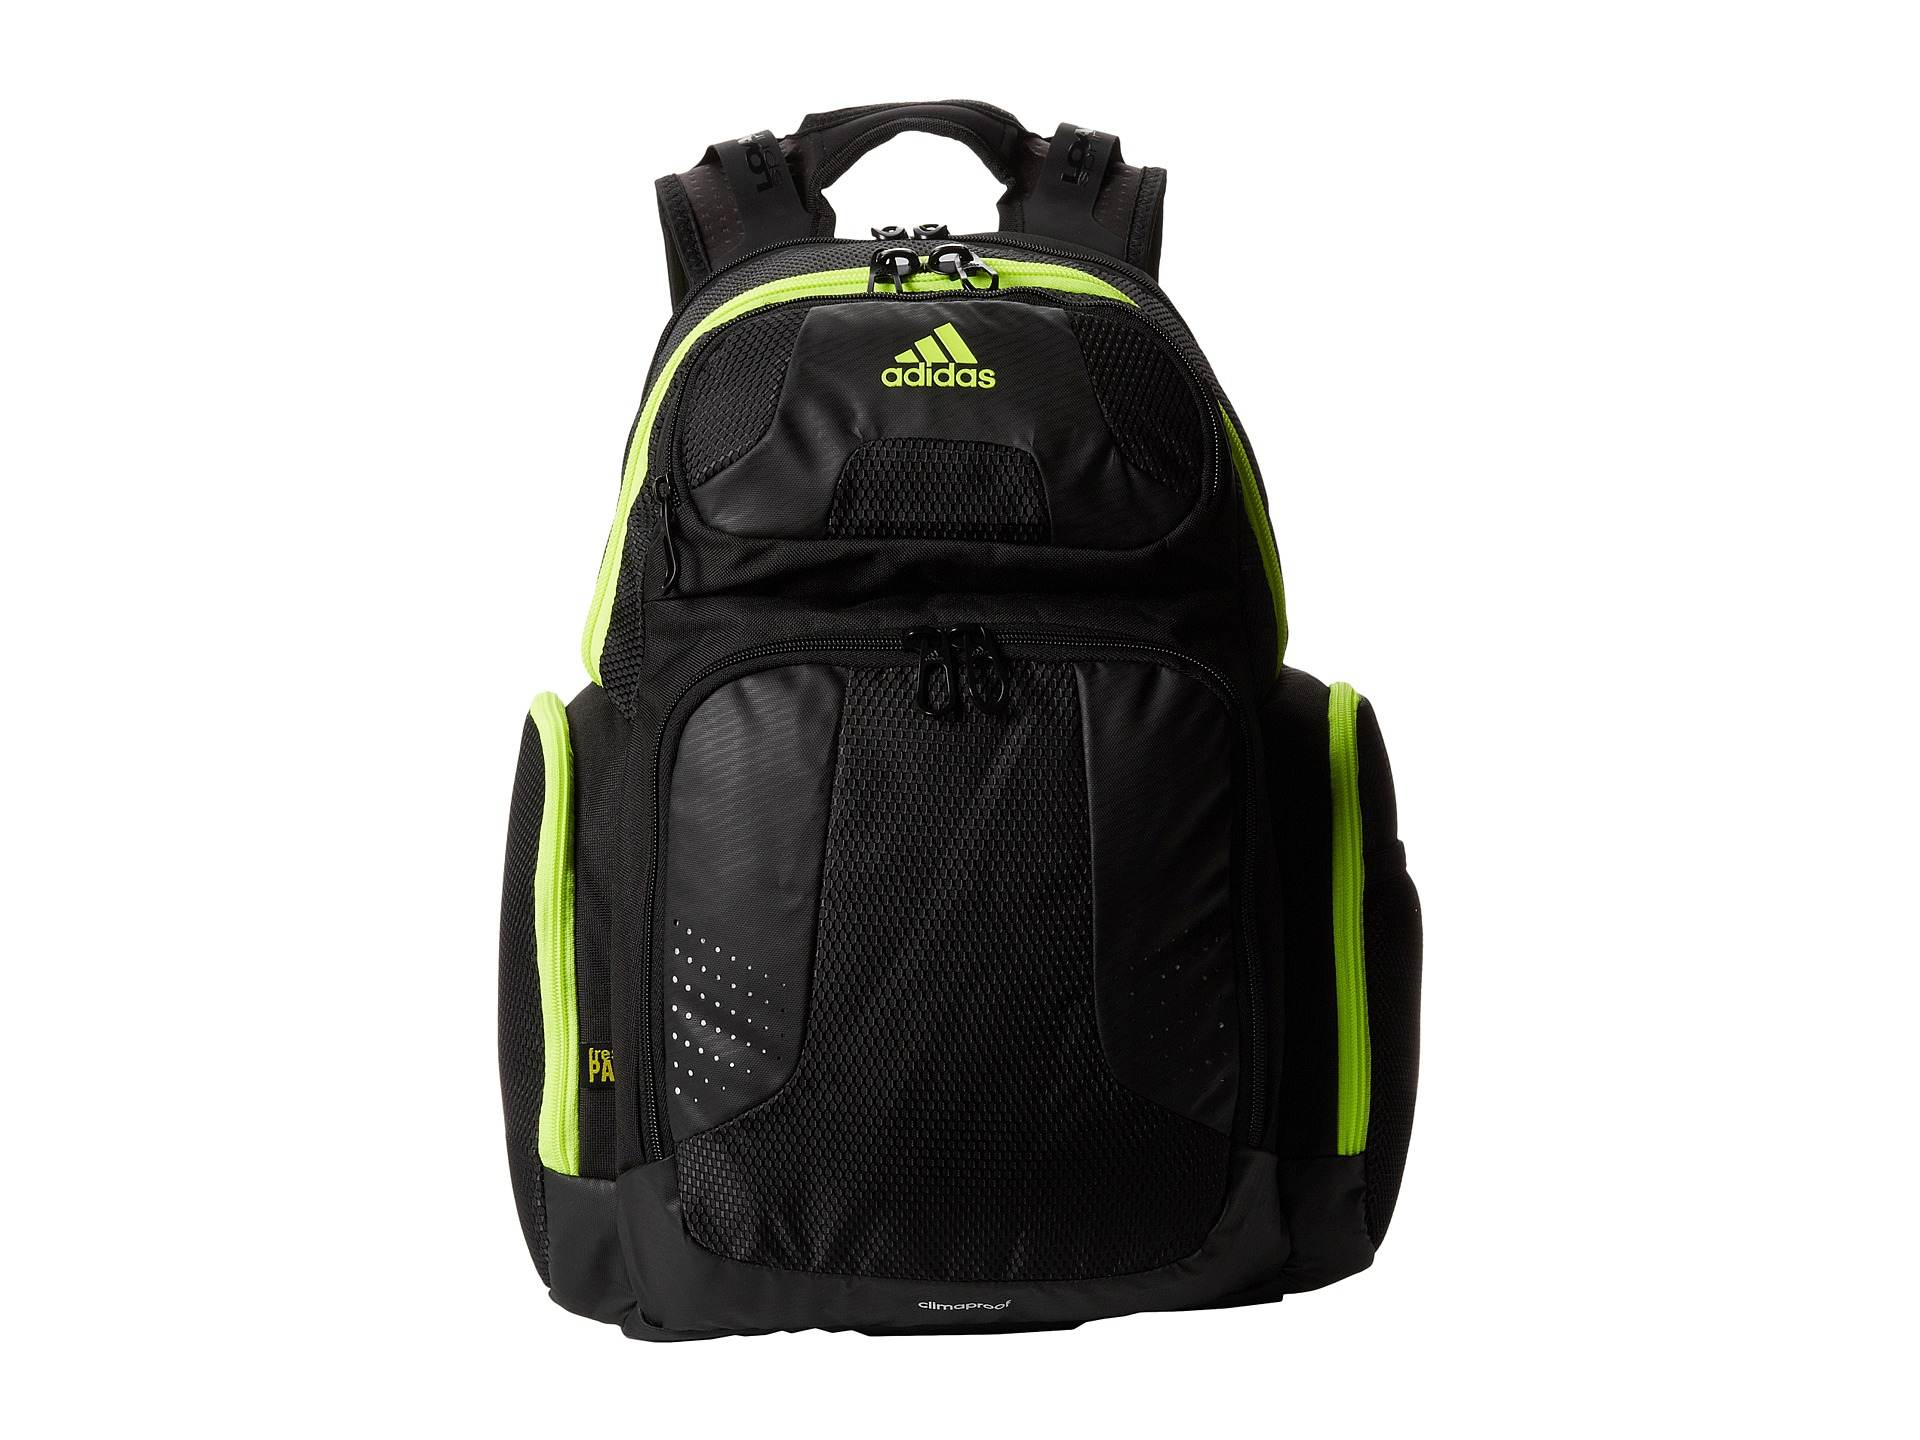 b48091a42626f6 Lyst - adidas Climacool Strength Backpack in Black for Men